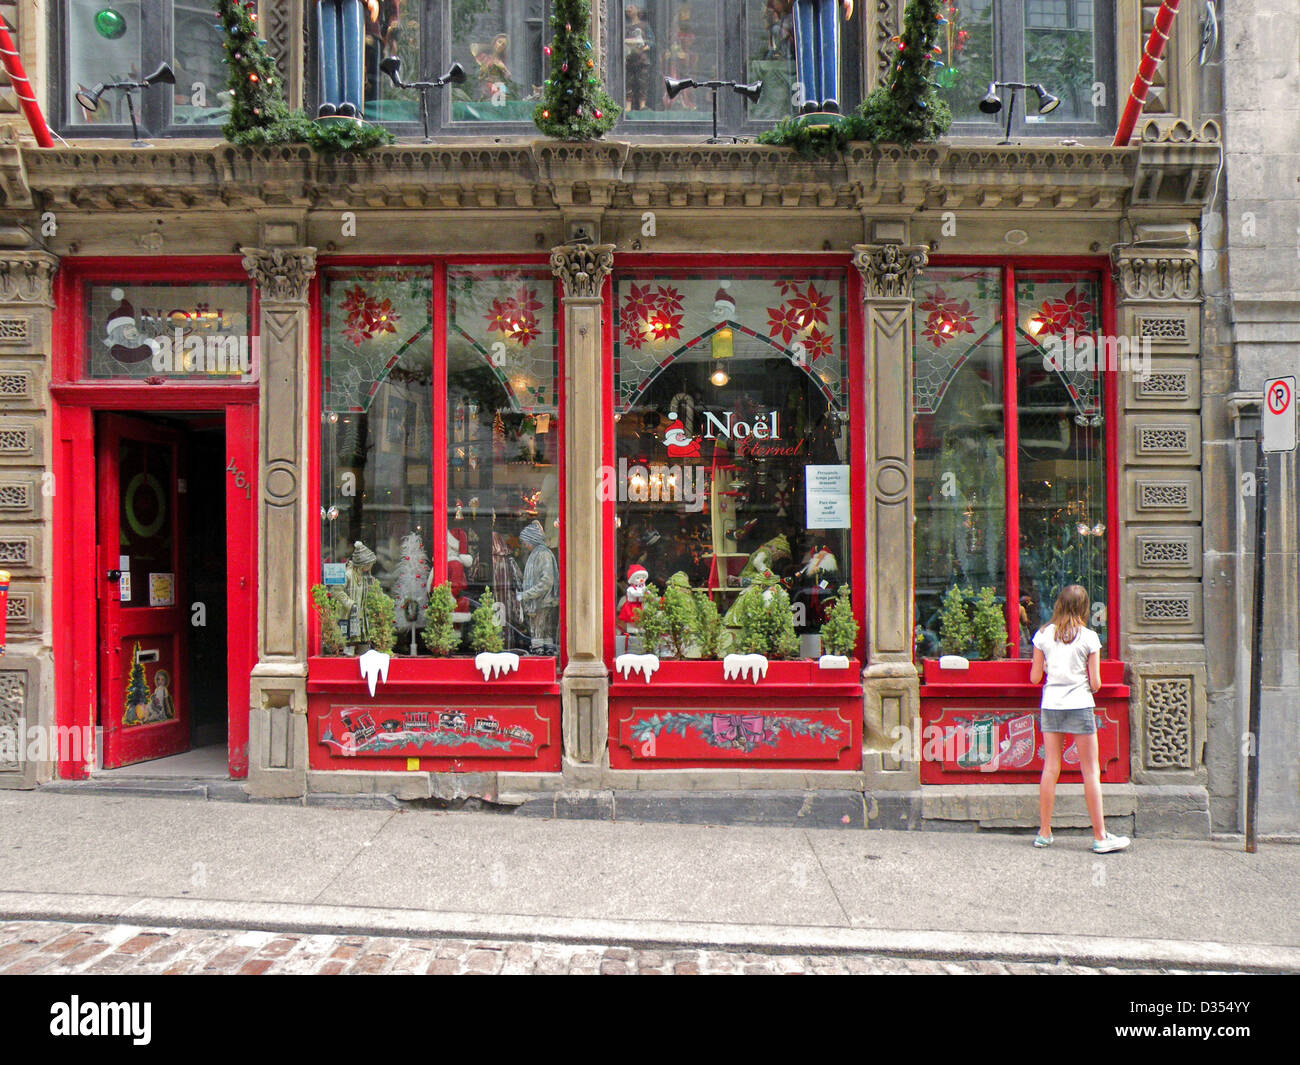 Noel Eternel, a Montreal Canada Christmas store photographed in ...